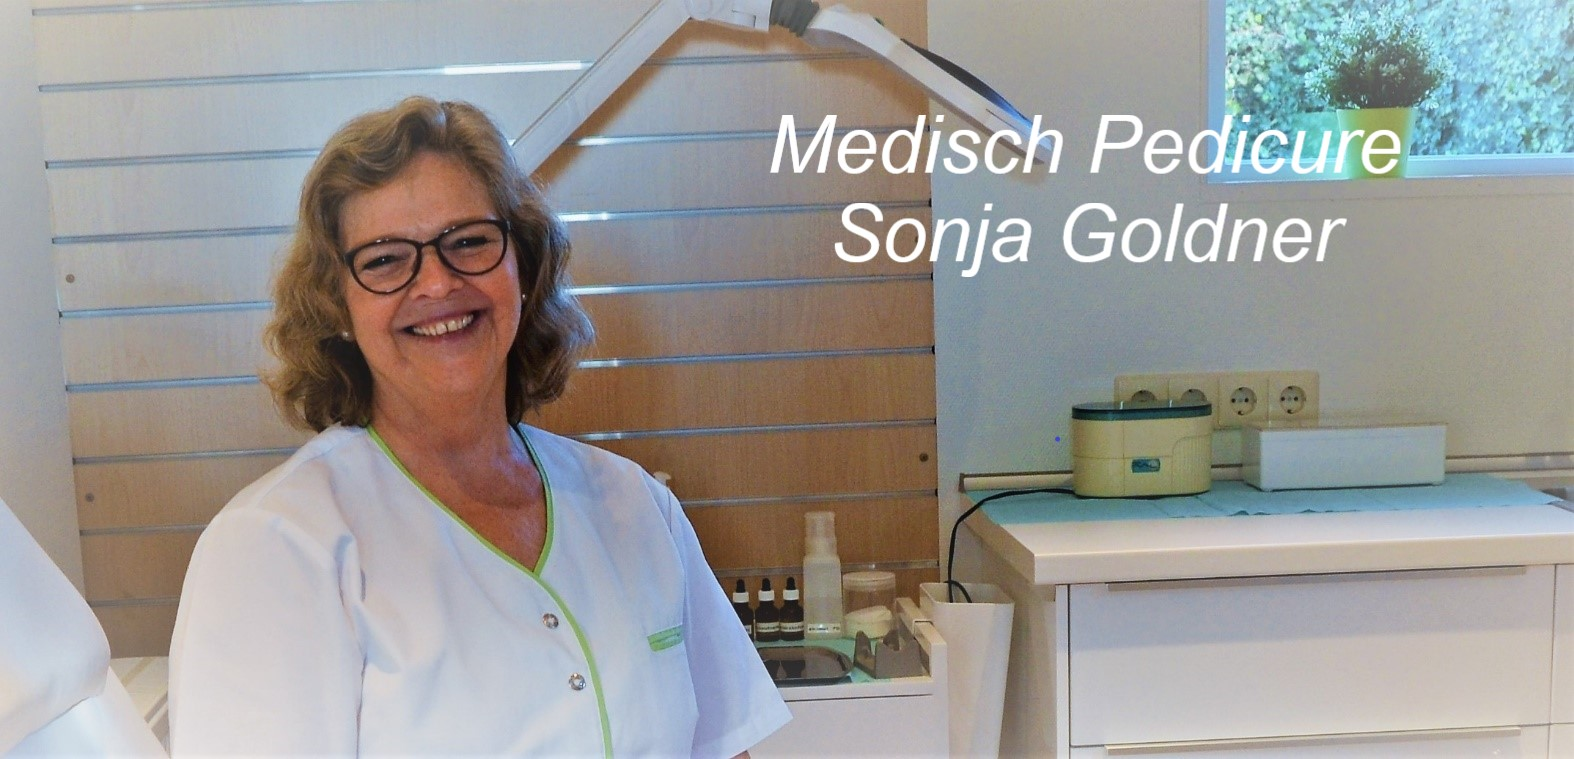 Pedicure Sonja Goldner